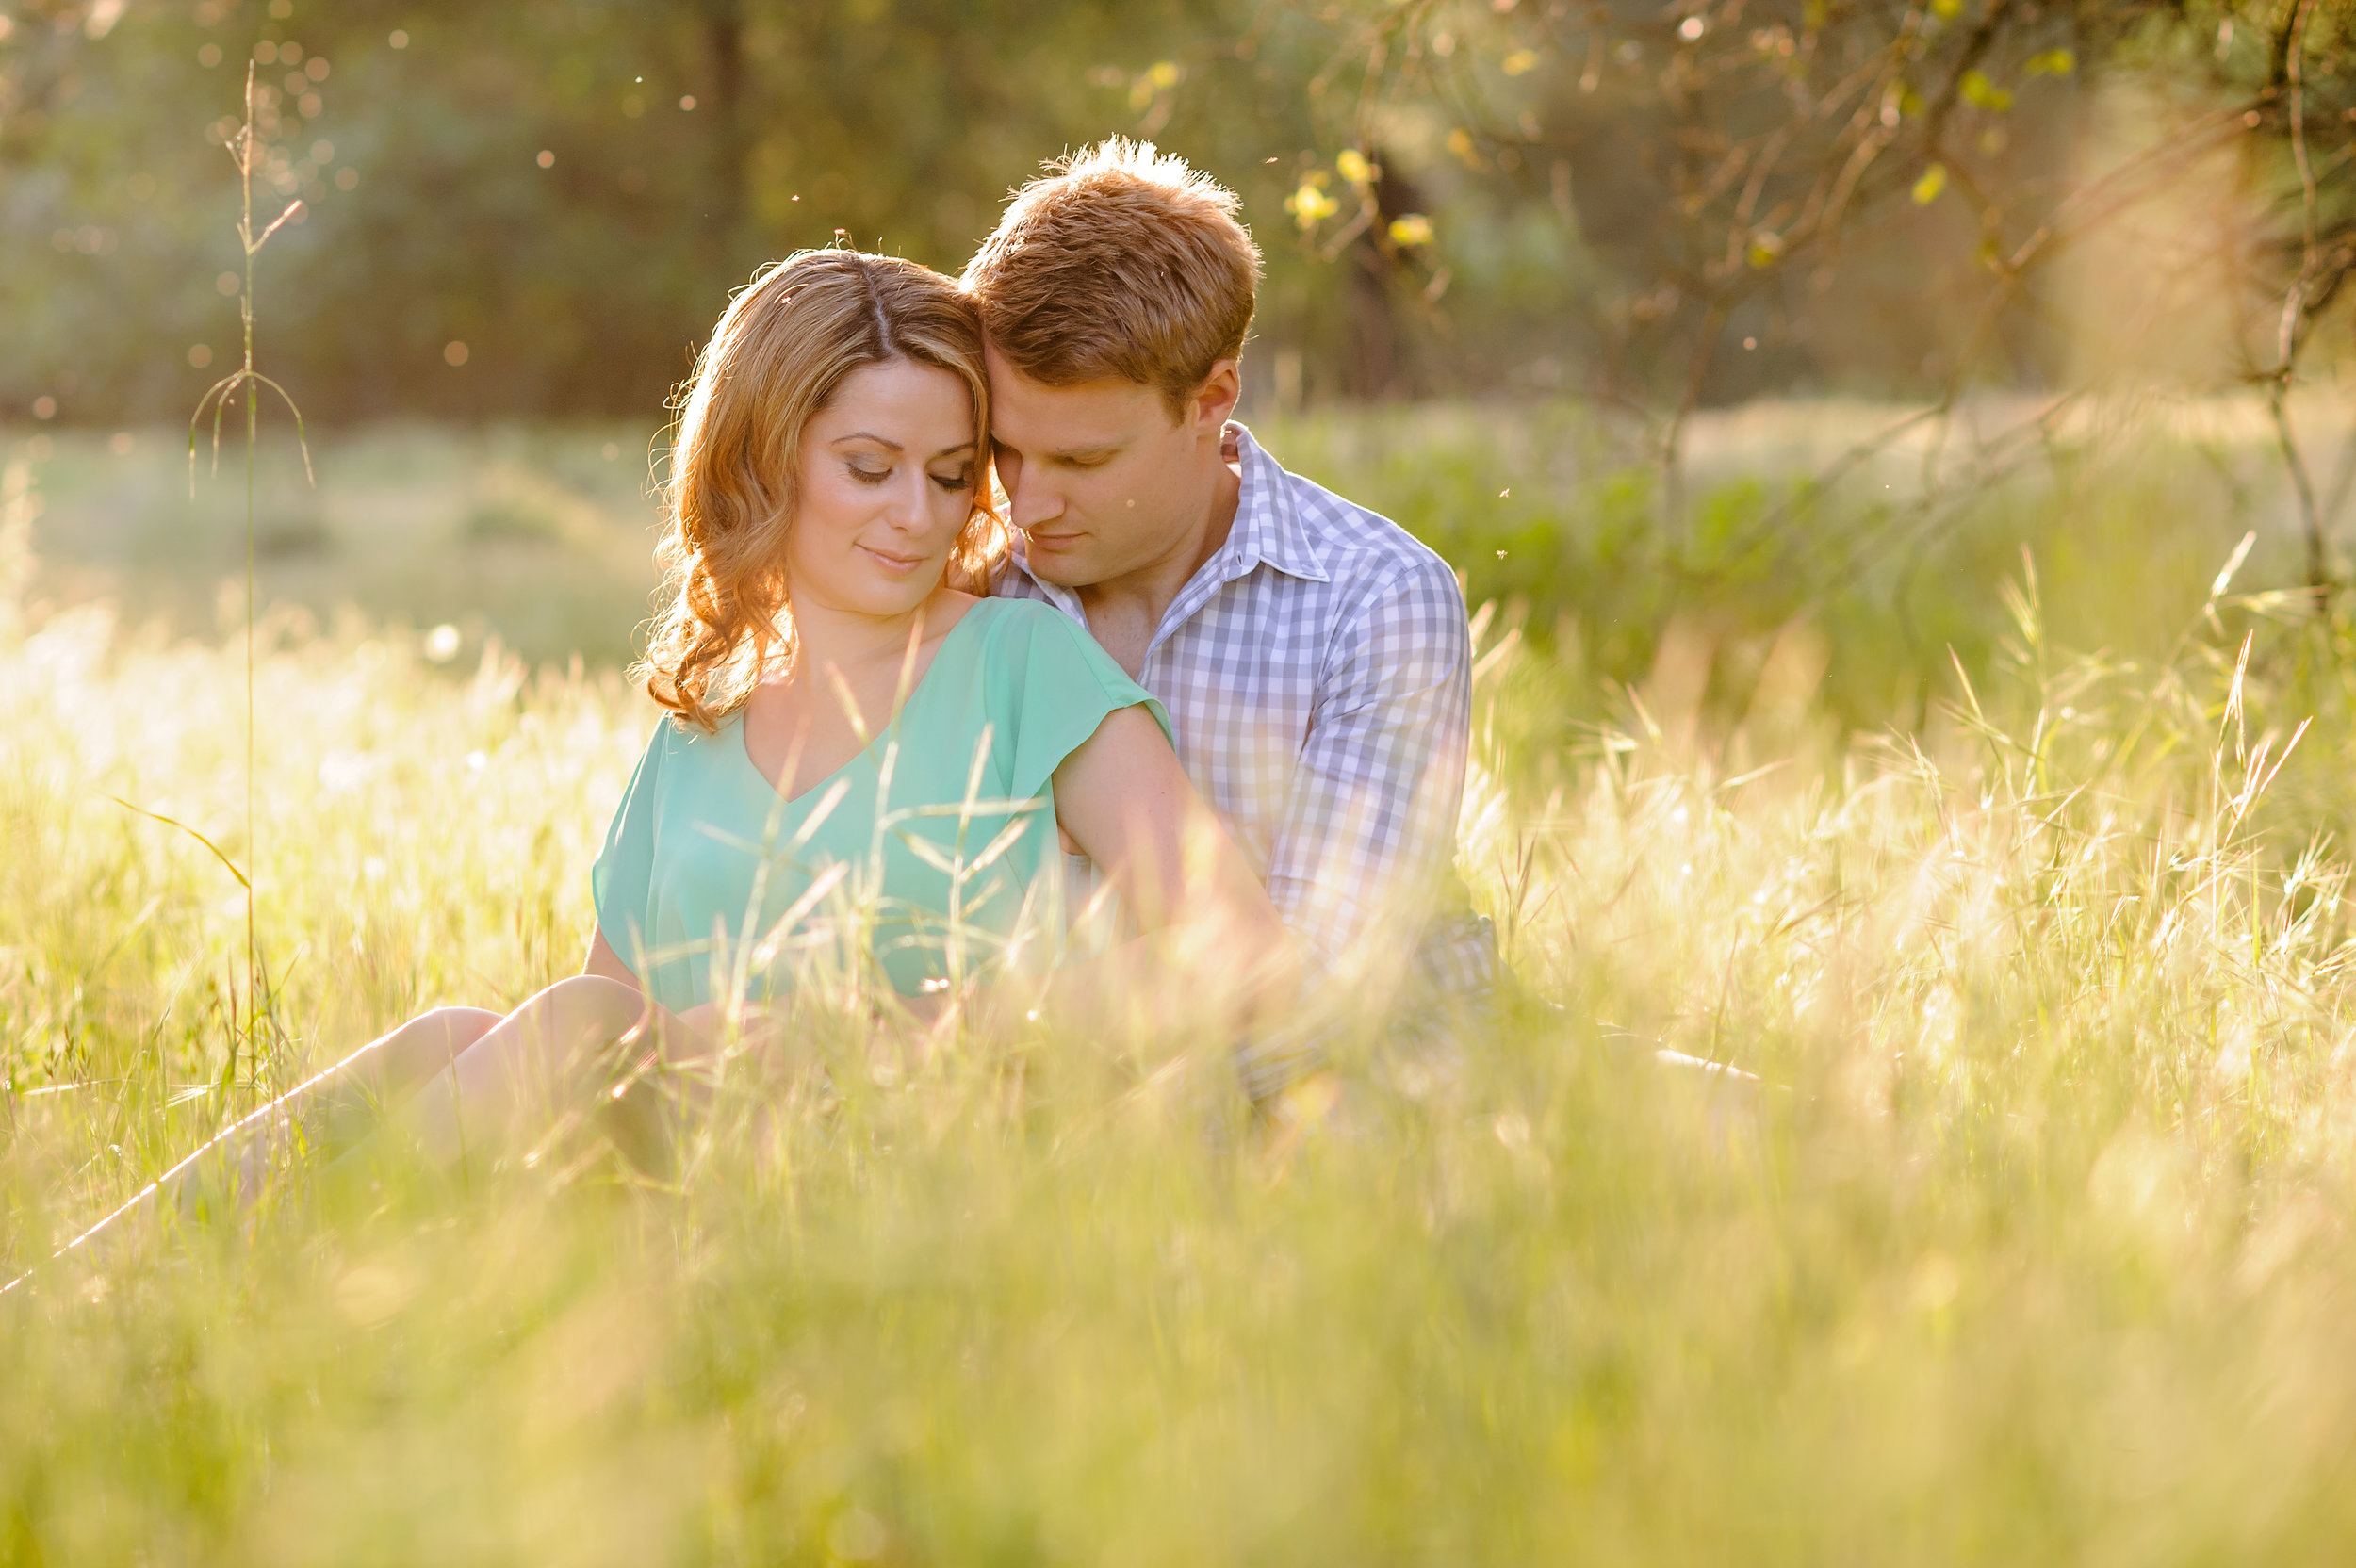 jennifer-dave-003-sacramento-engagement-wedding-photographer-katherine-nicole-photography.JPG